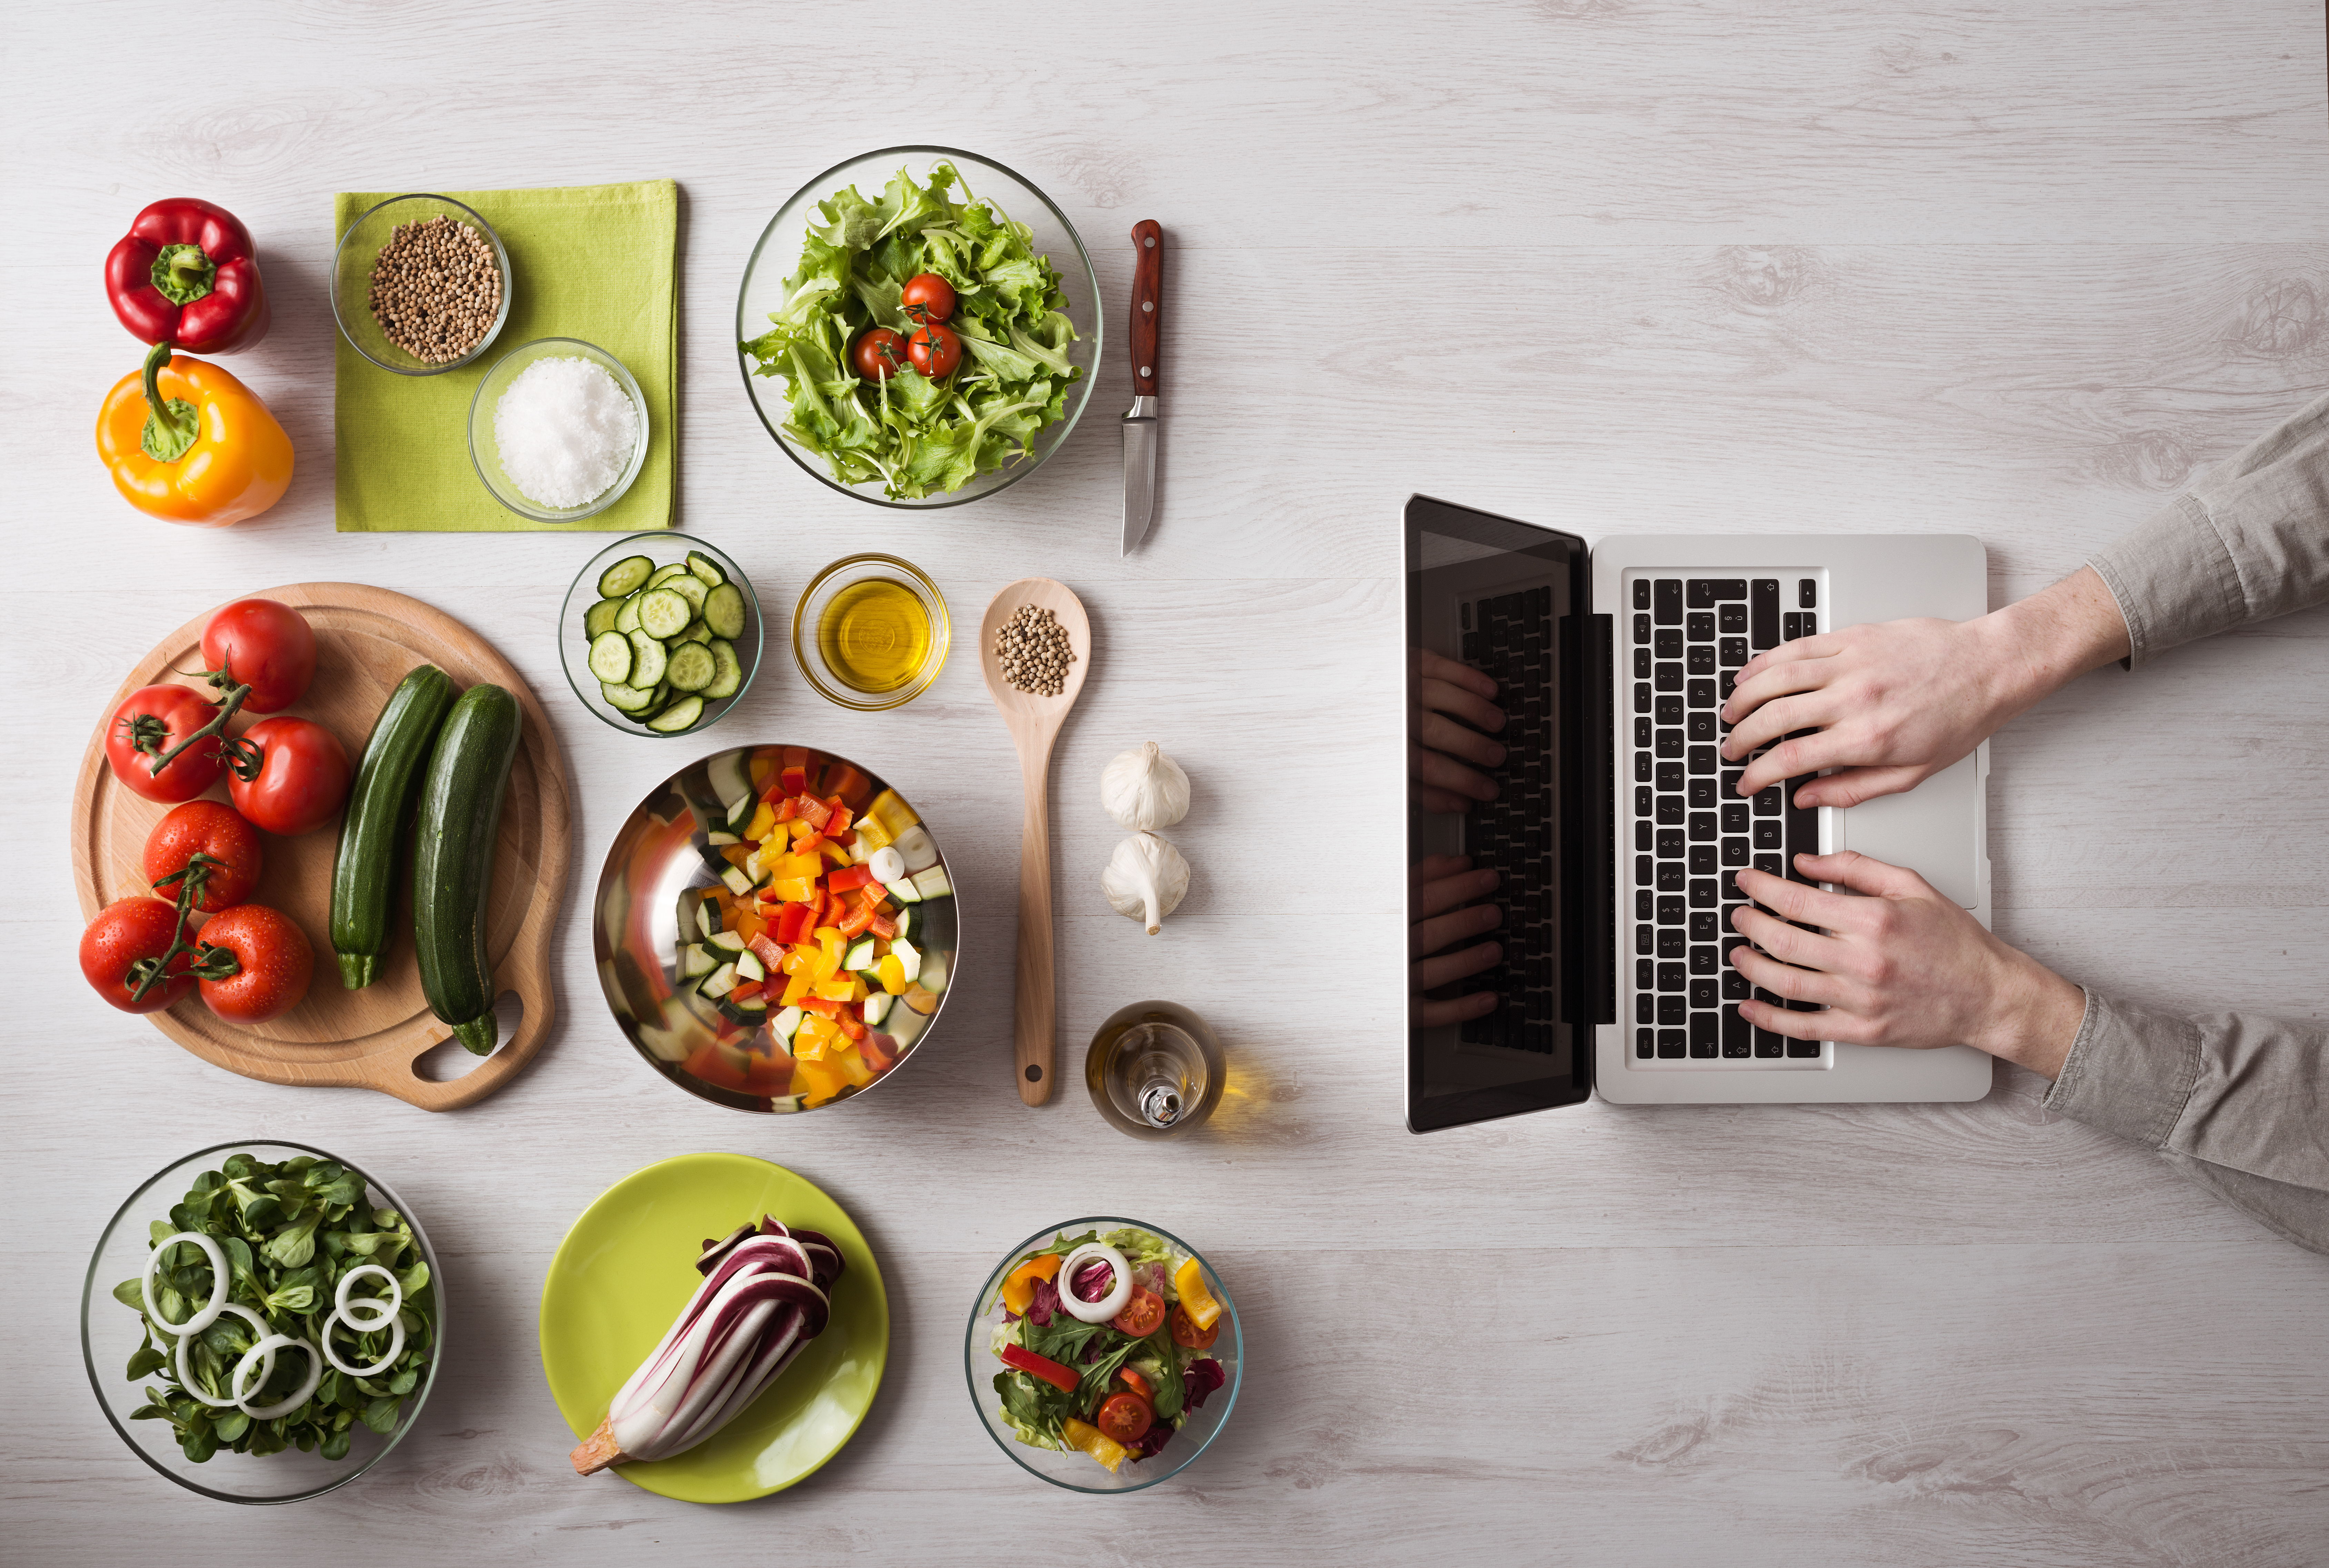 Someone types at a laptop in front of plates of food, mostly vegetables